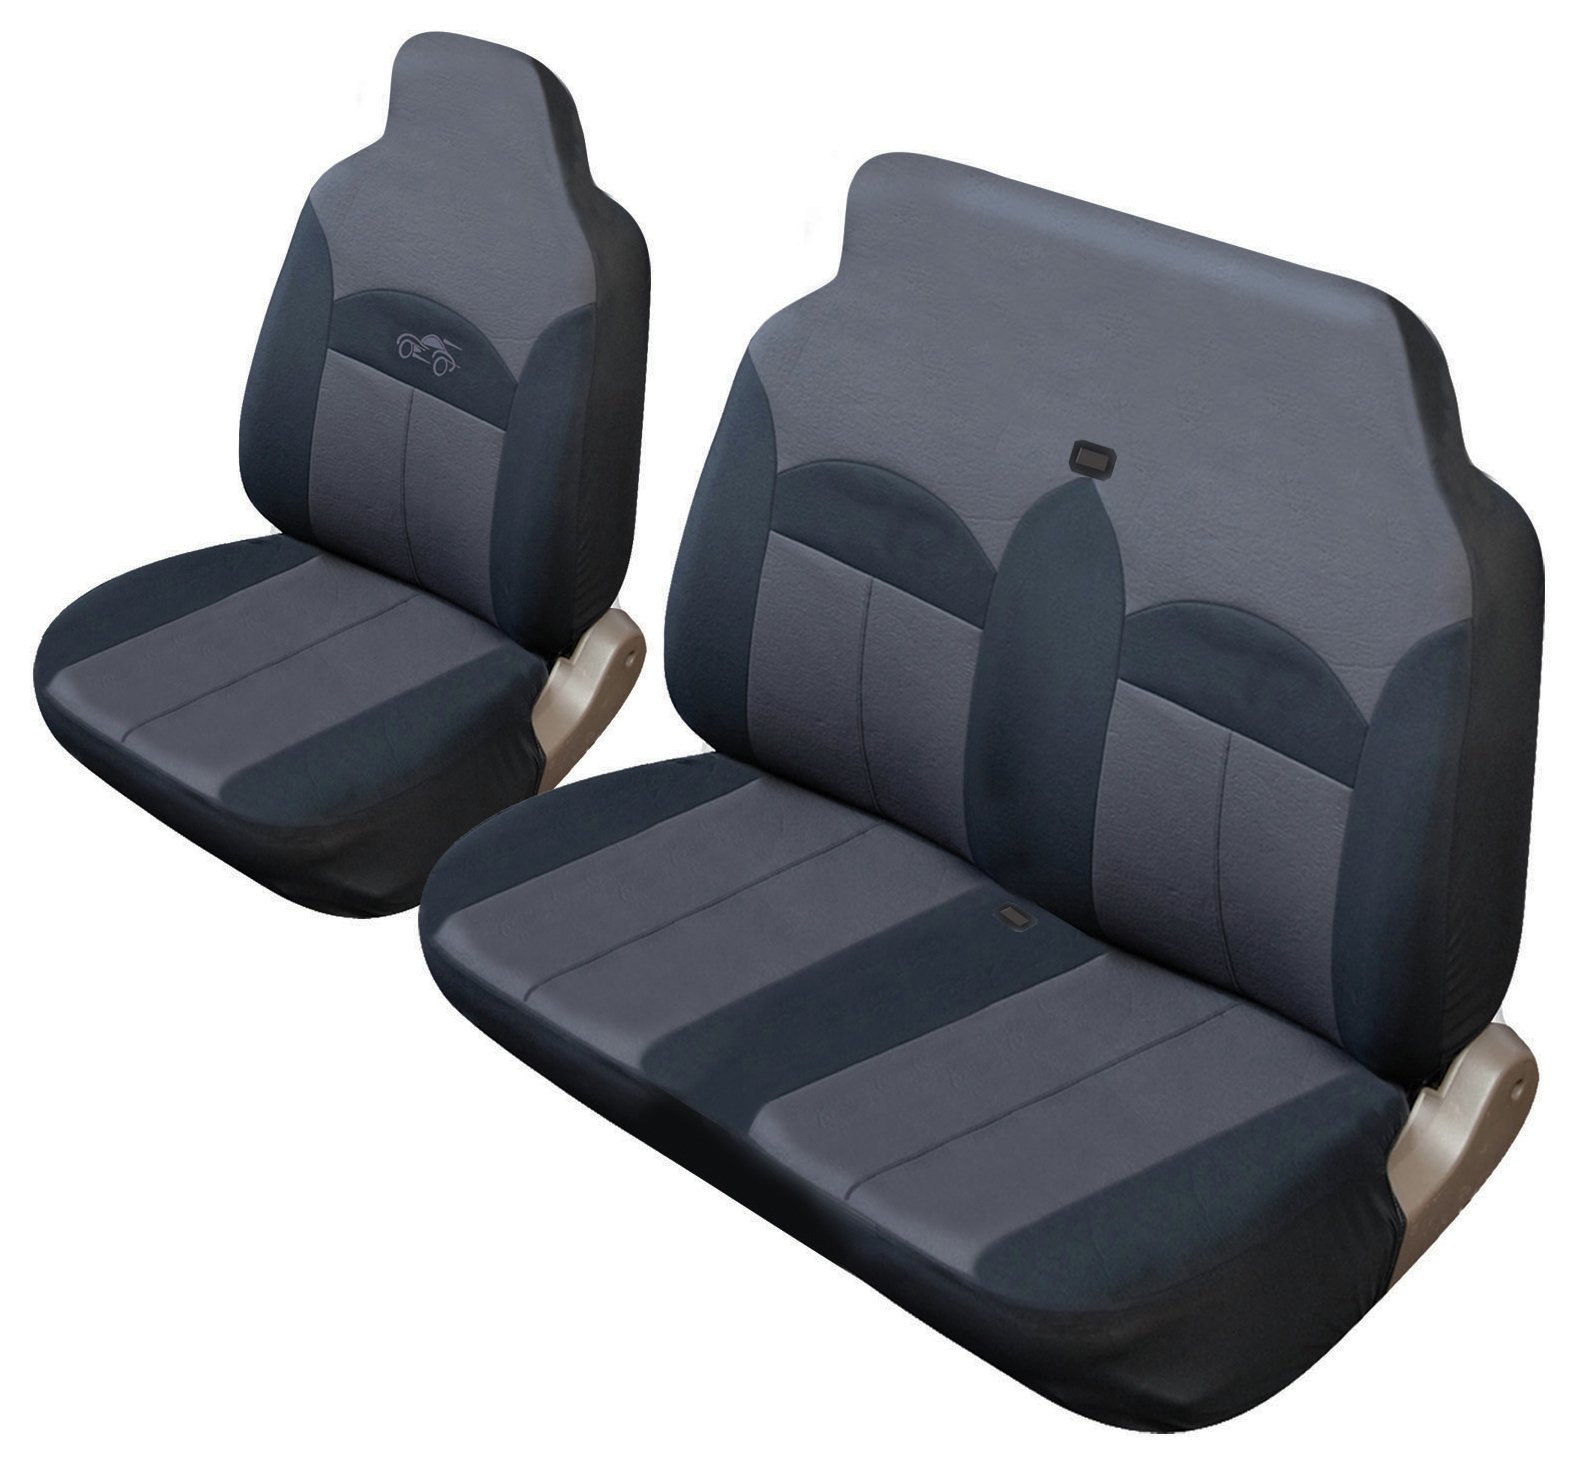 Cosmos Celsius Commercial Seat Cover Set - Black and Grey